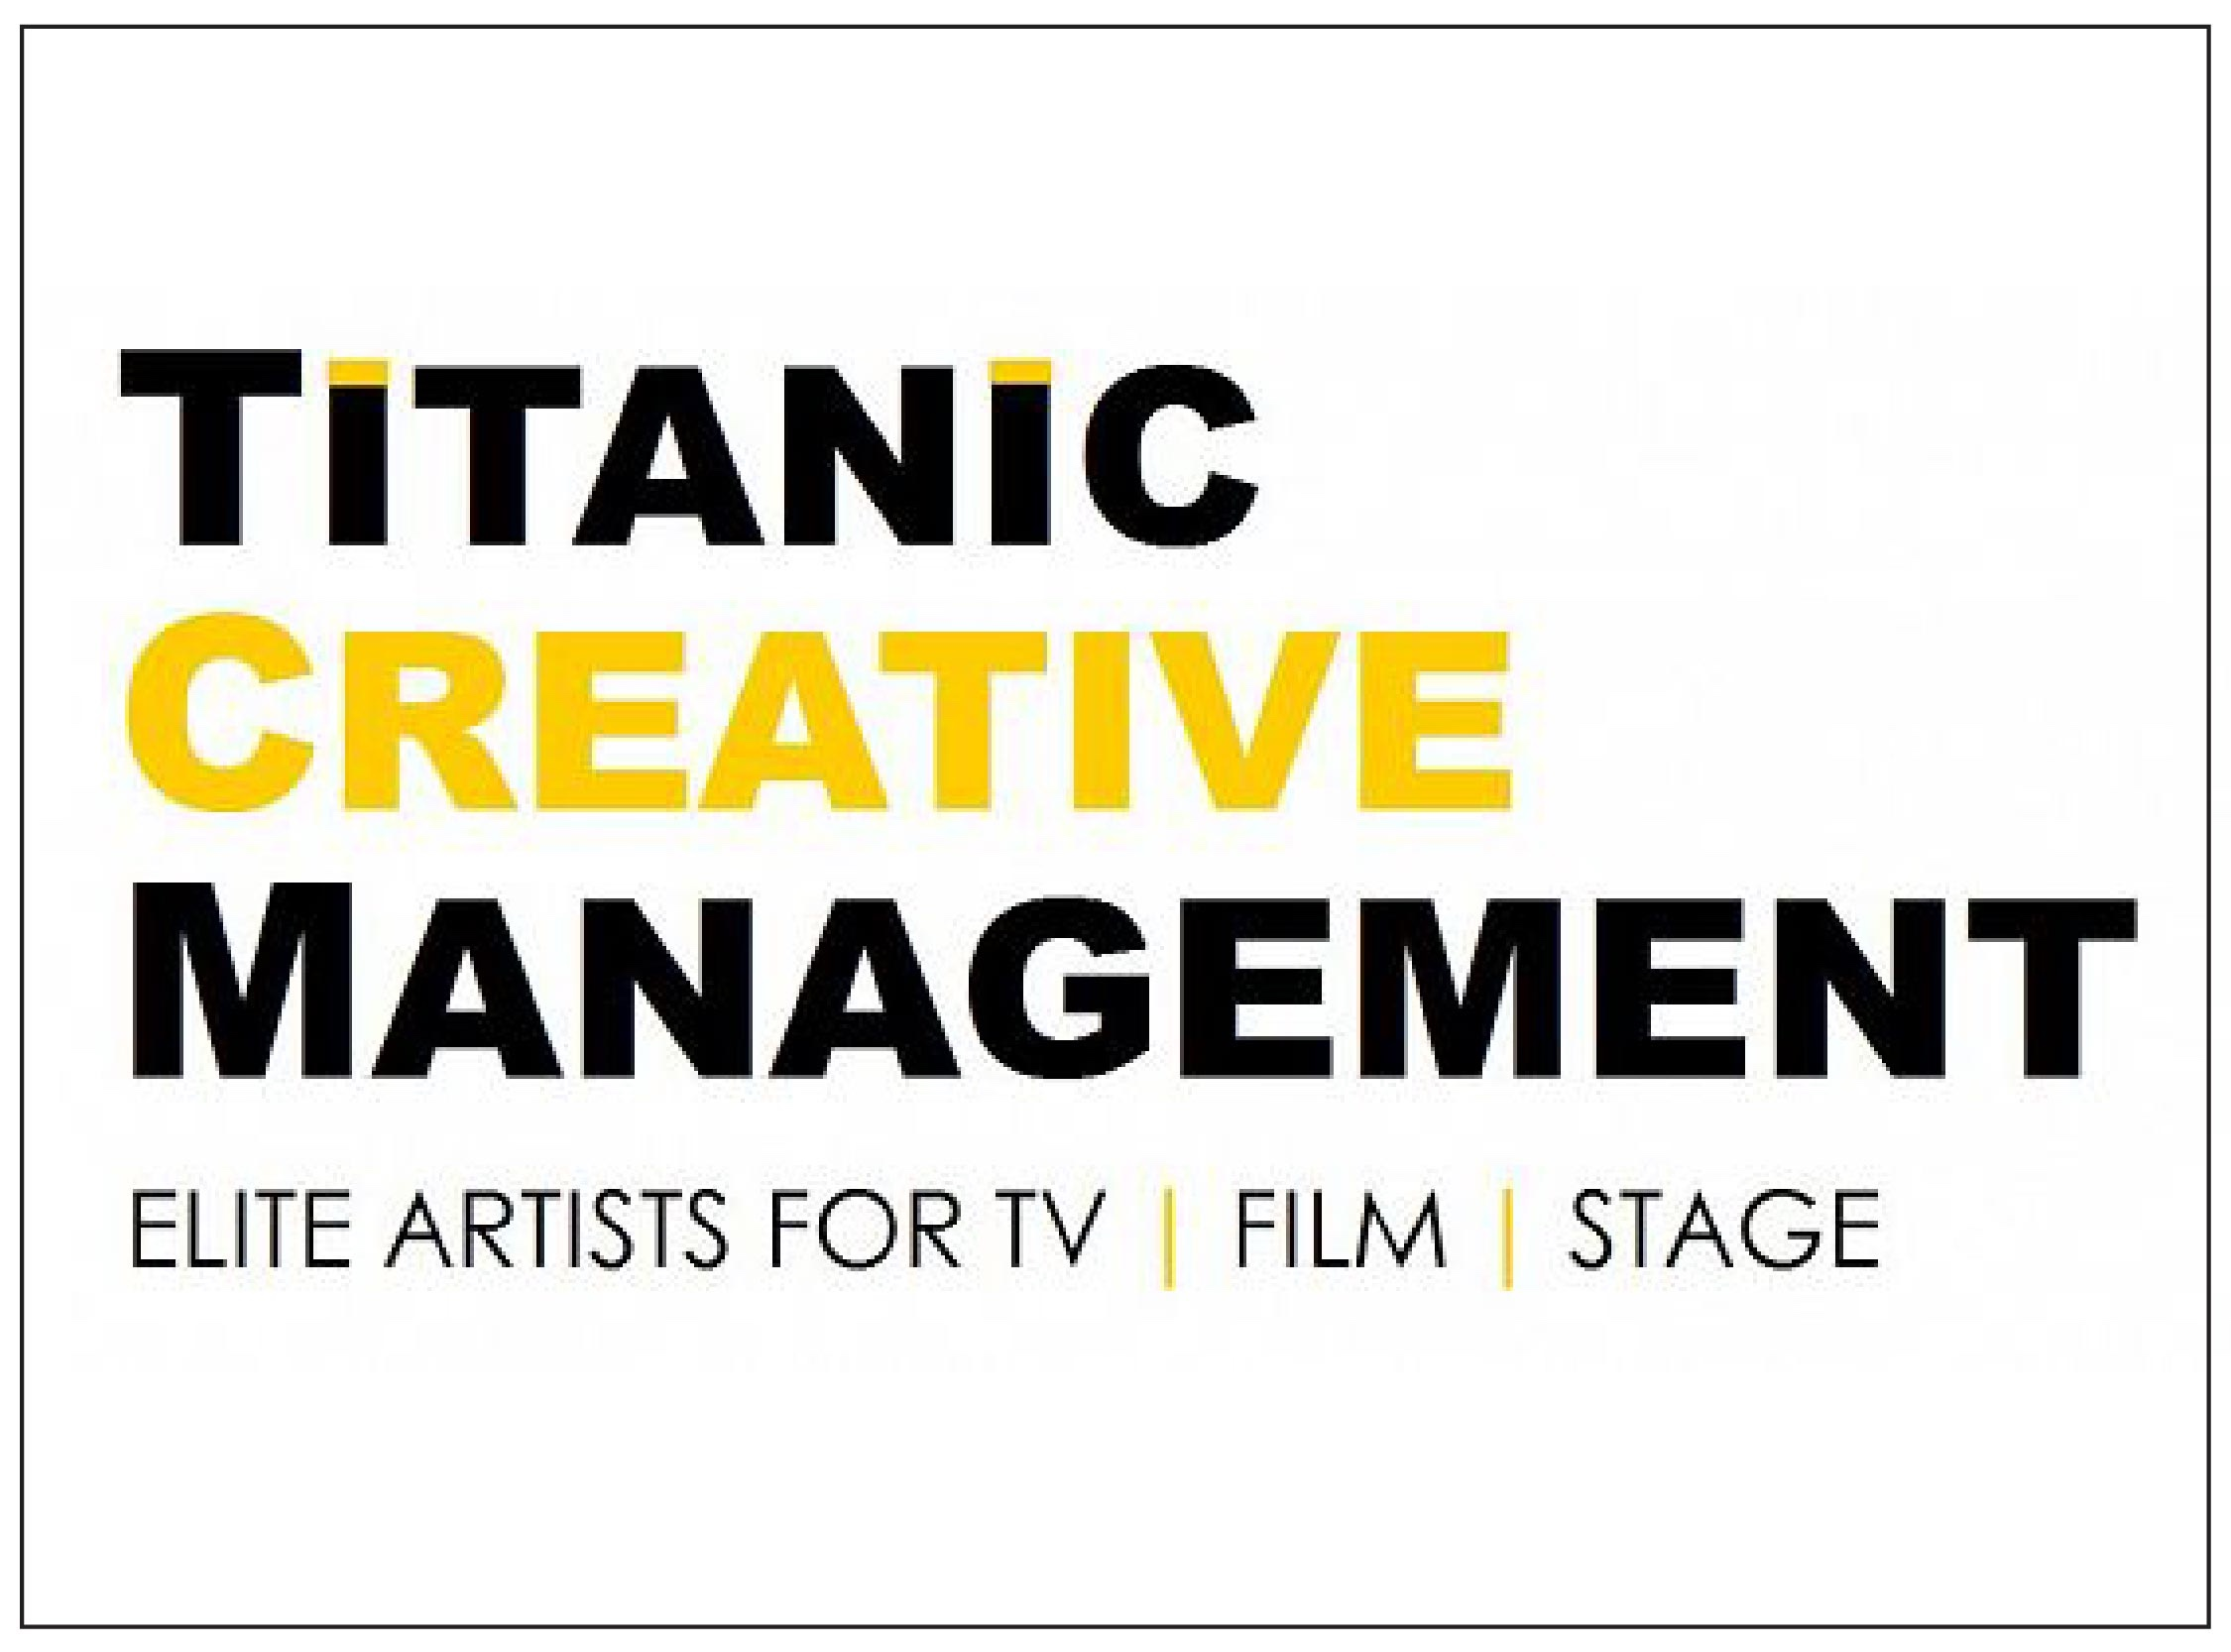 Titanic-Creative-Management-2015-Portfolio-01